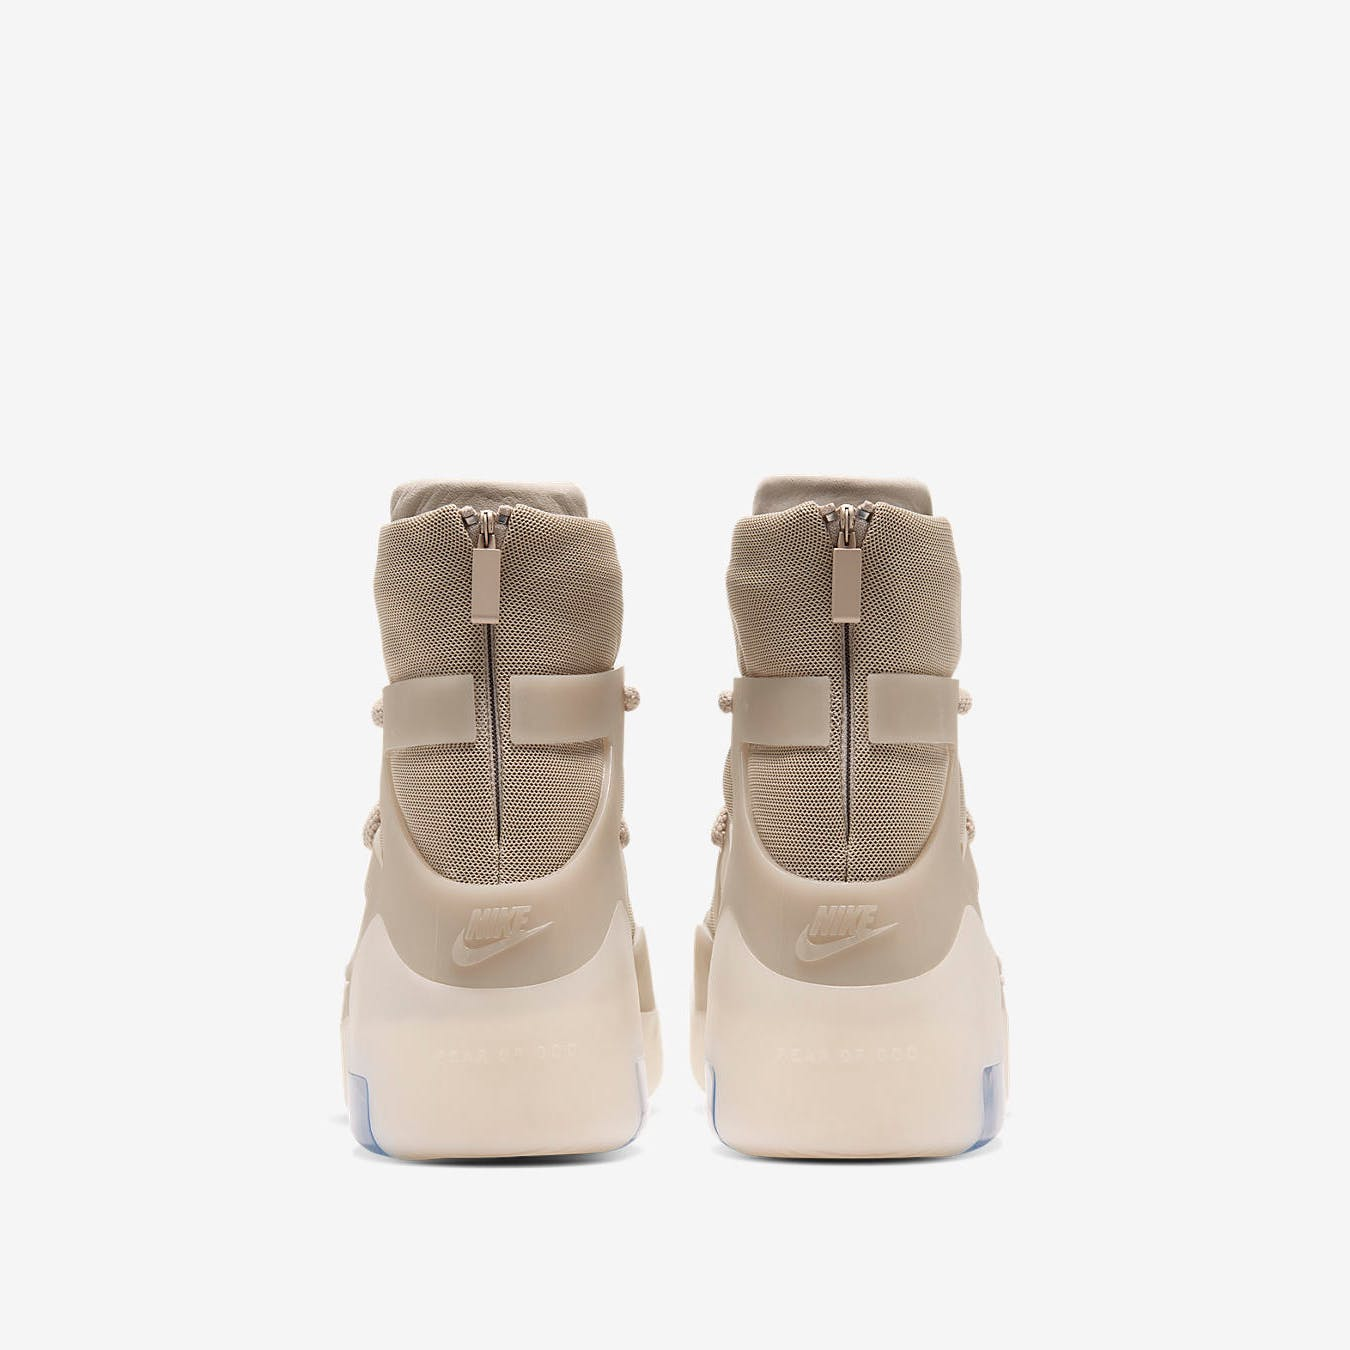 Nike Air Fear of God 1 - AR4237-900